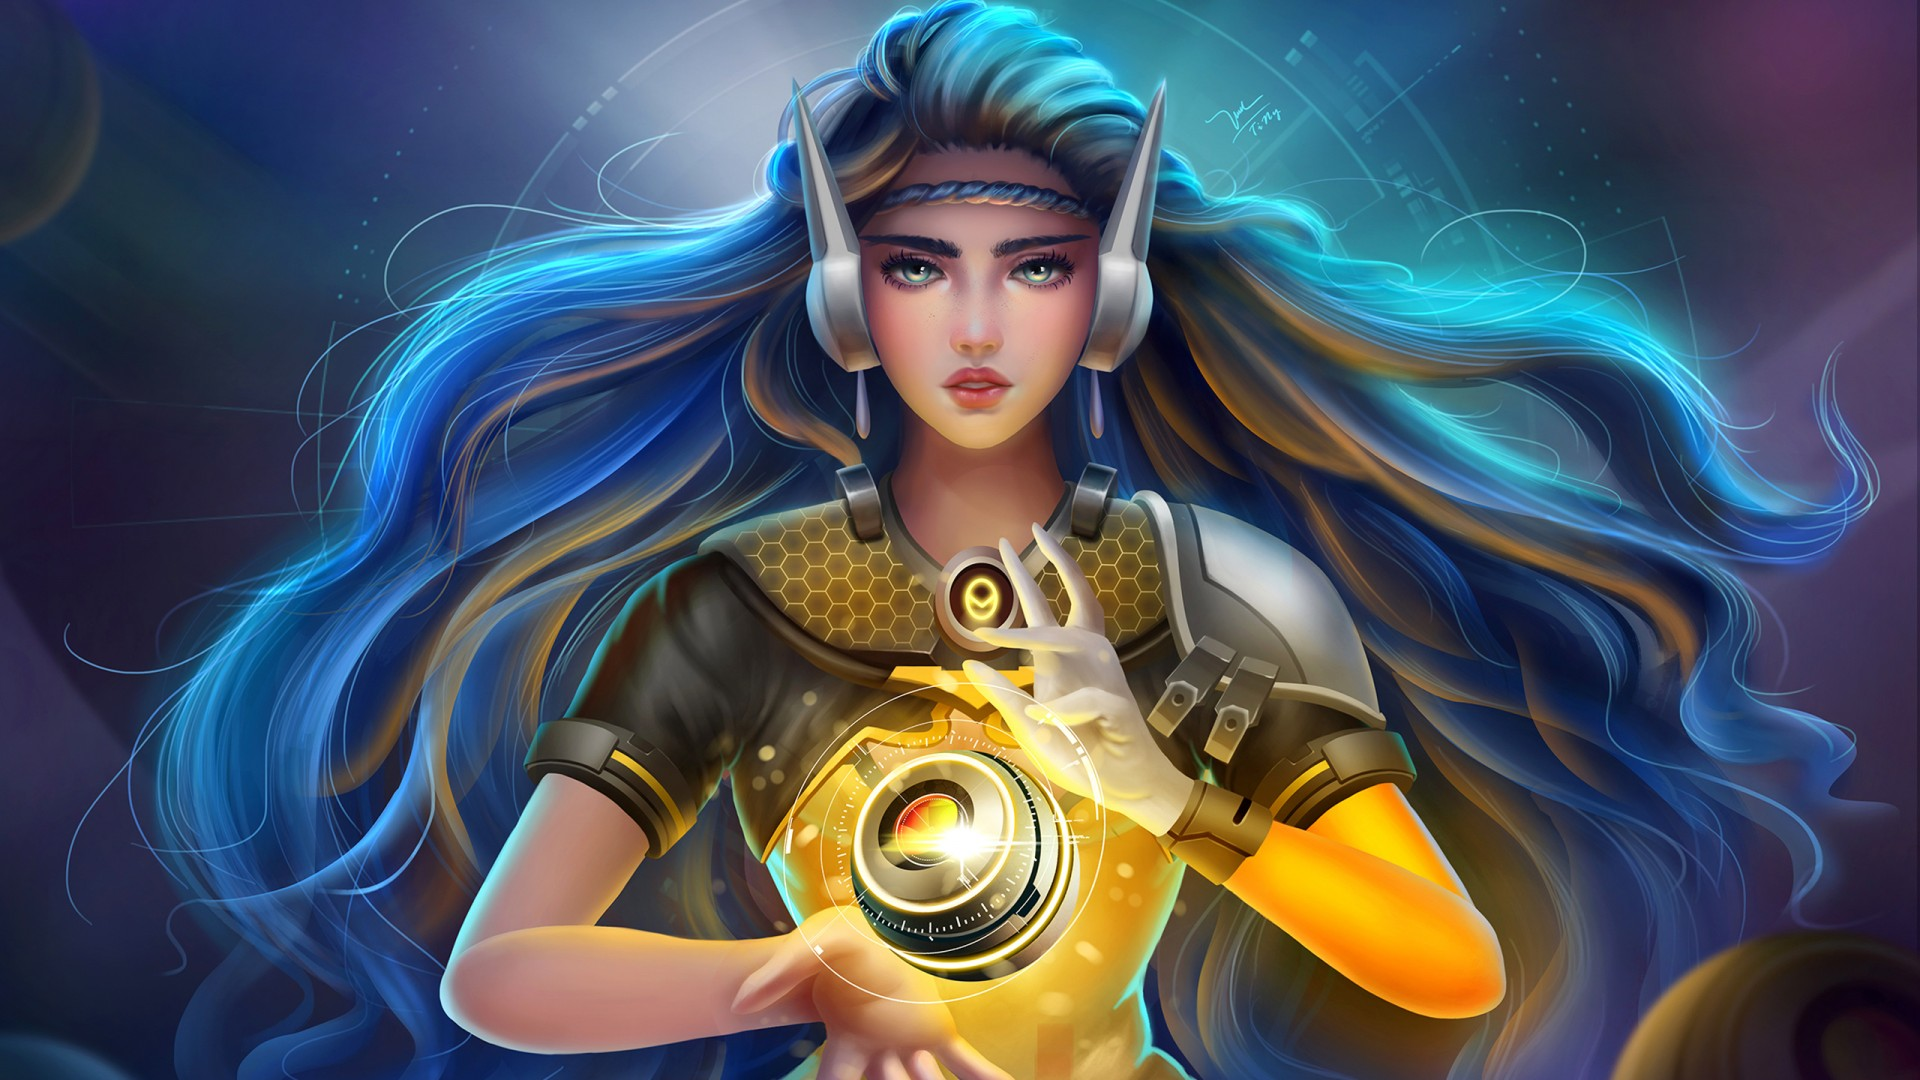 Cute Alien Computer Wallpapers Symmetra Overwatch Artwork Wallpapers Hd Wallpapers Id